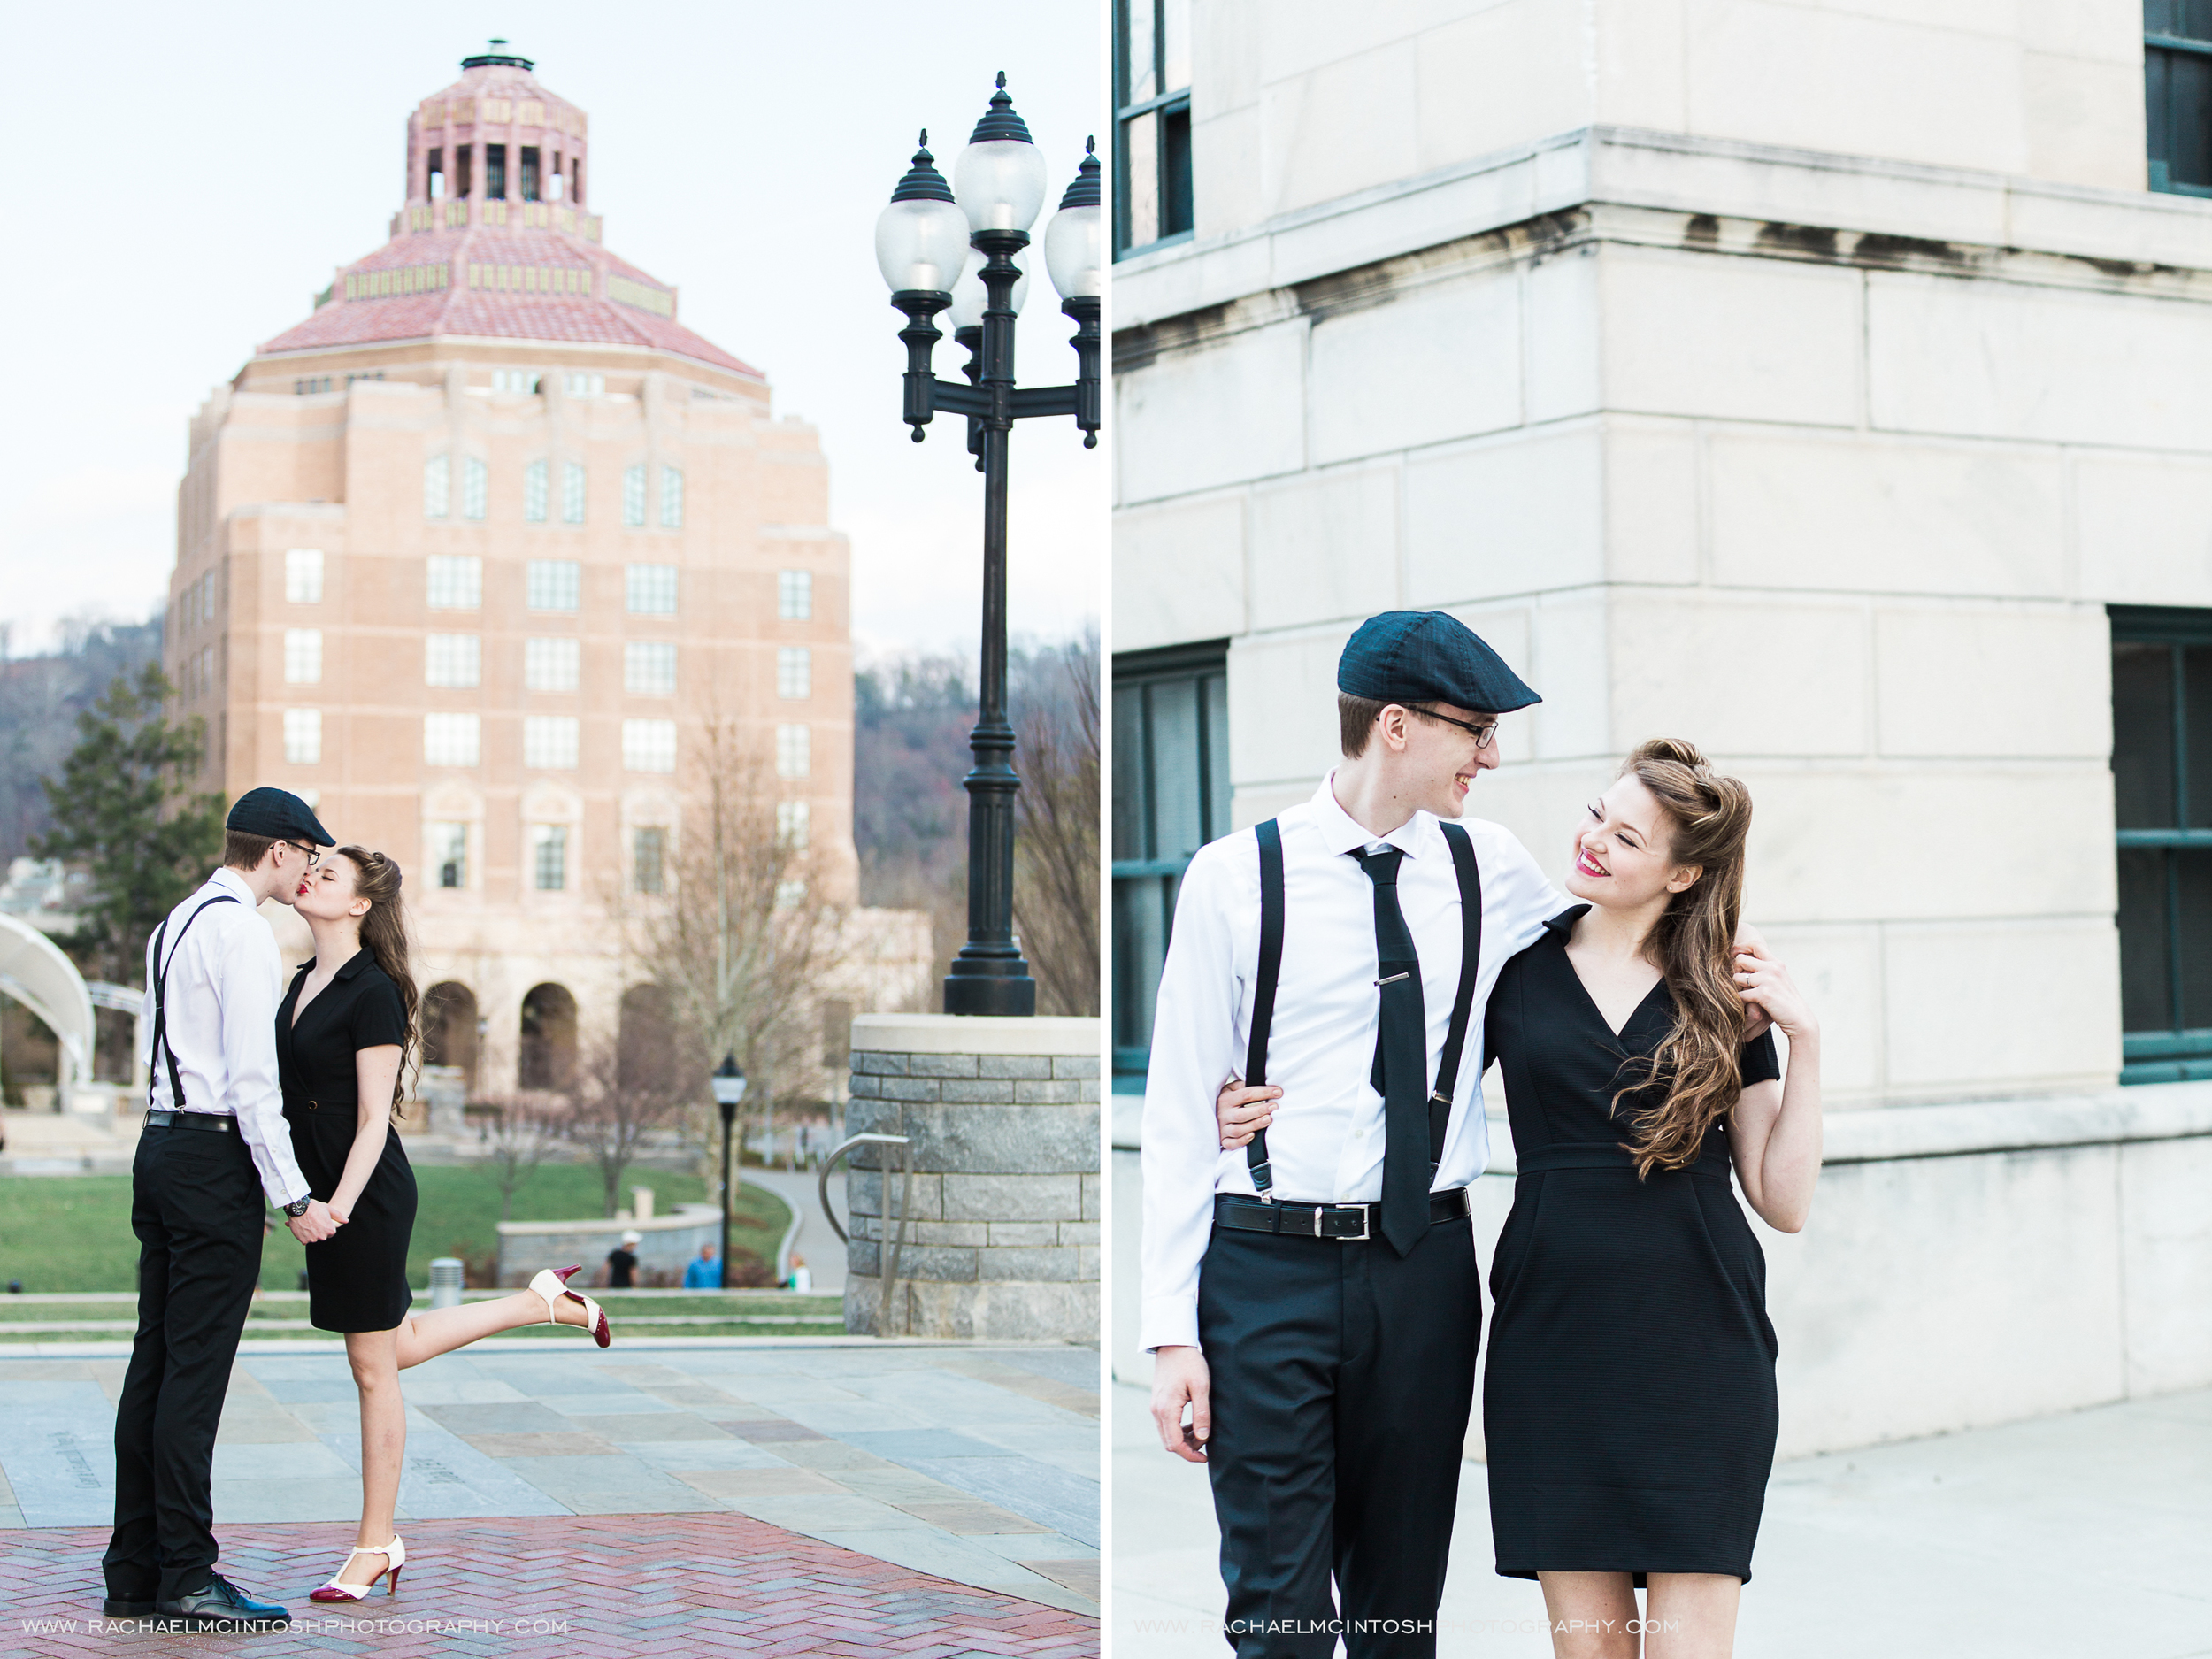 Vintage-Themed-Engagement-Session-Asheville-56.jpg